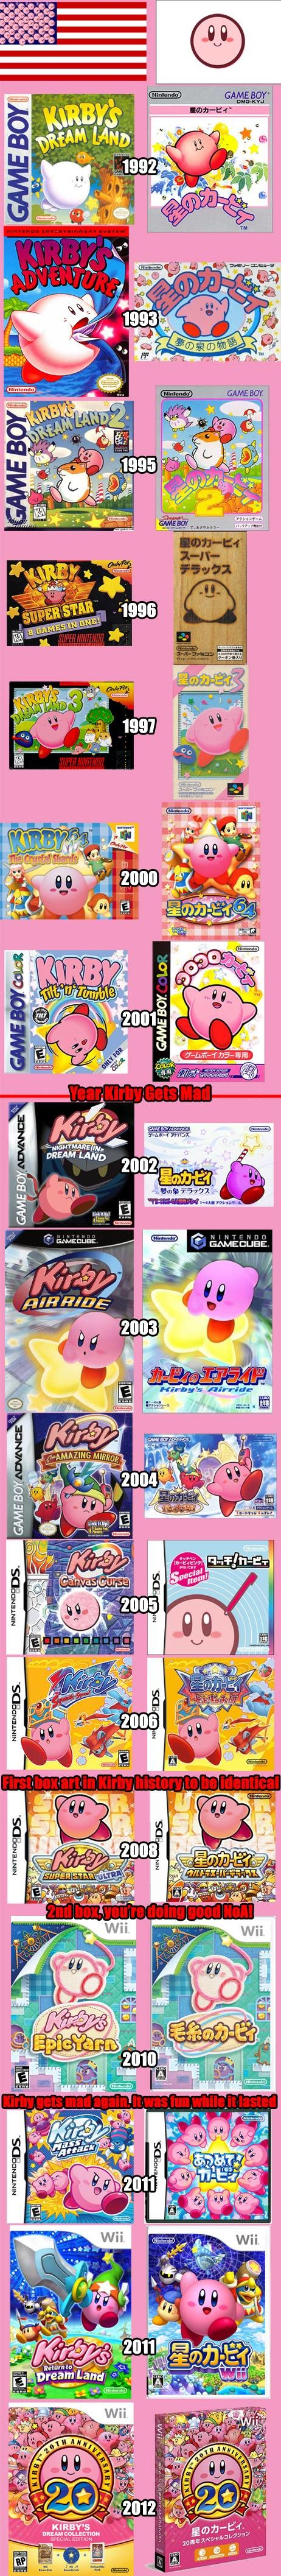 After 9/11, Kirby becomes strangely angry on American boxart. .. Fixed